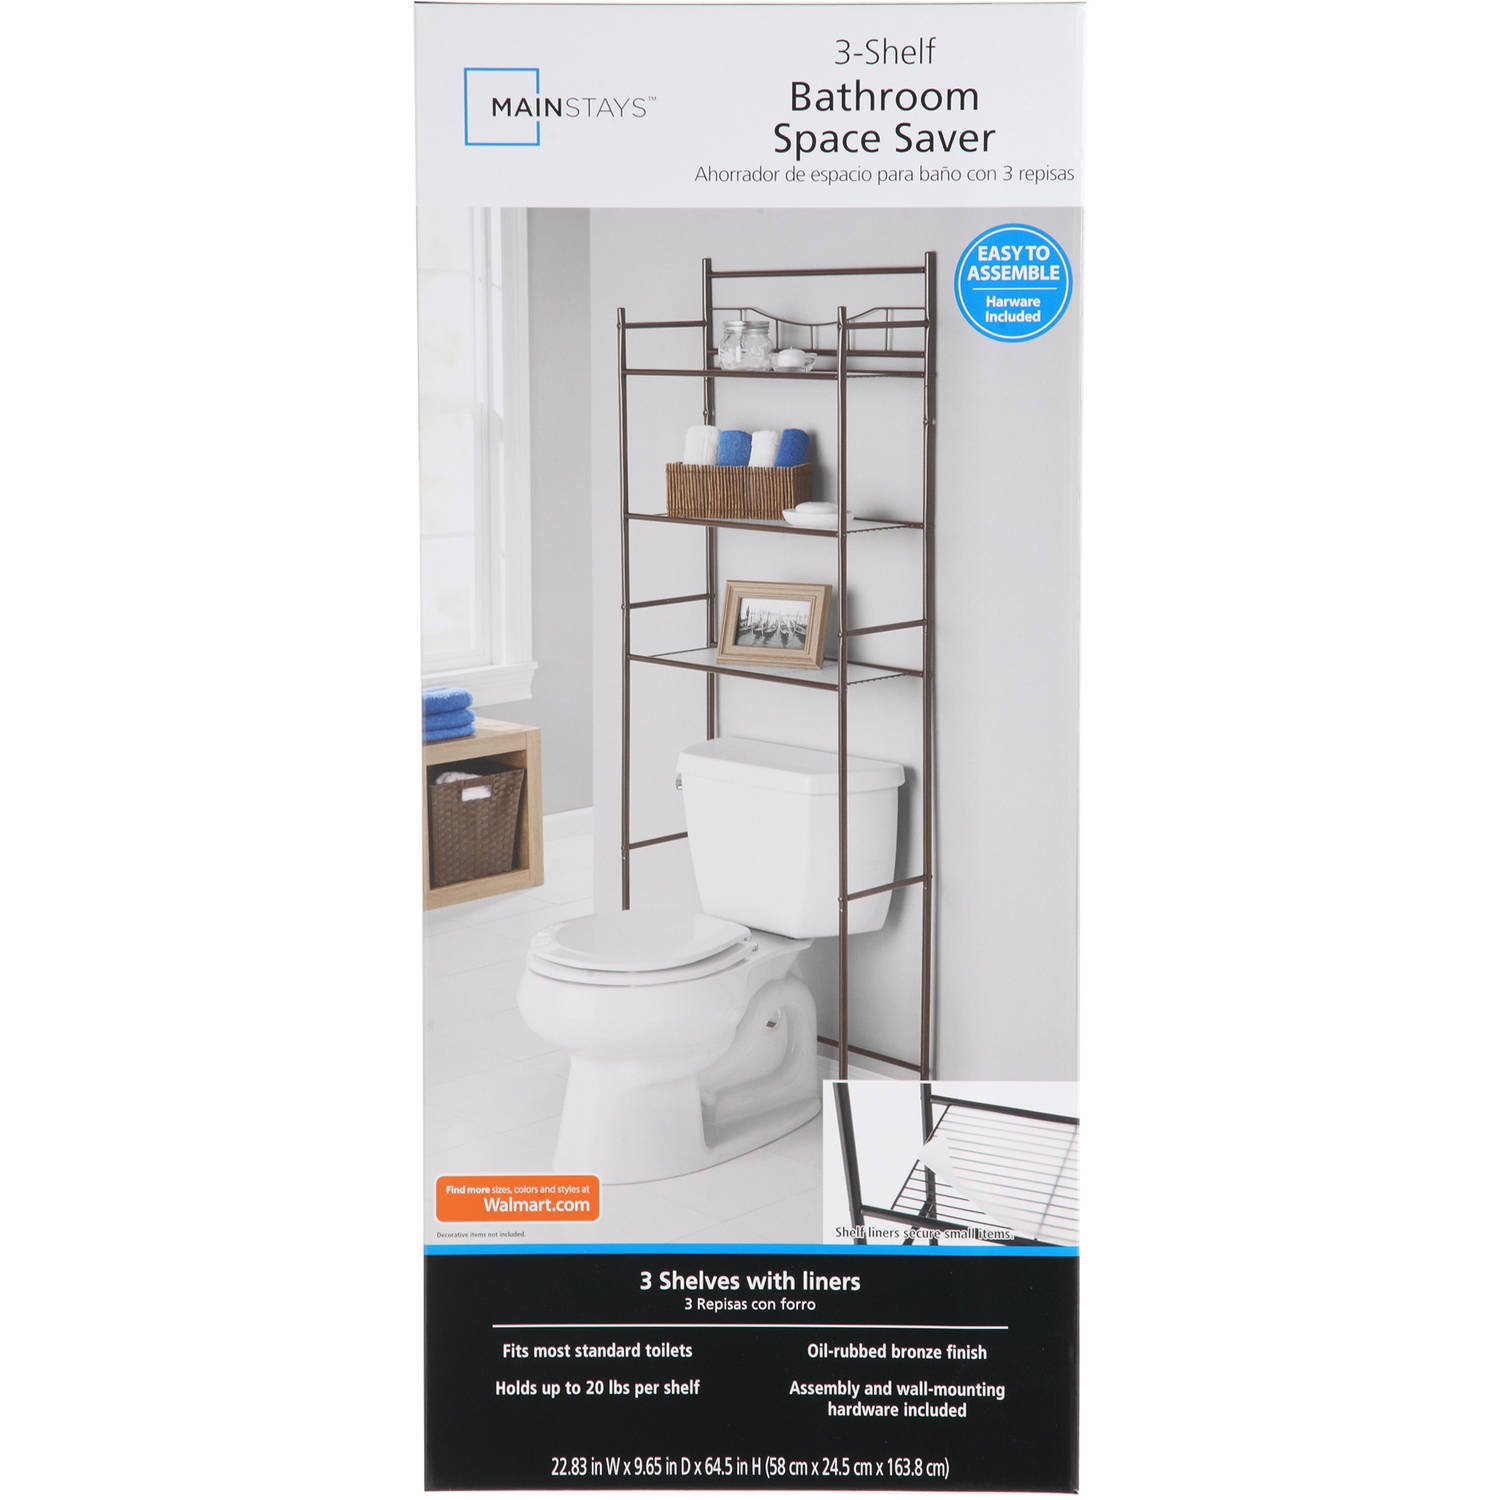 mainstays 3-shelf bathroom space saver, oil-rubbed bronze finish